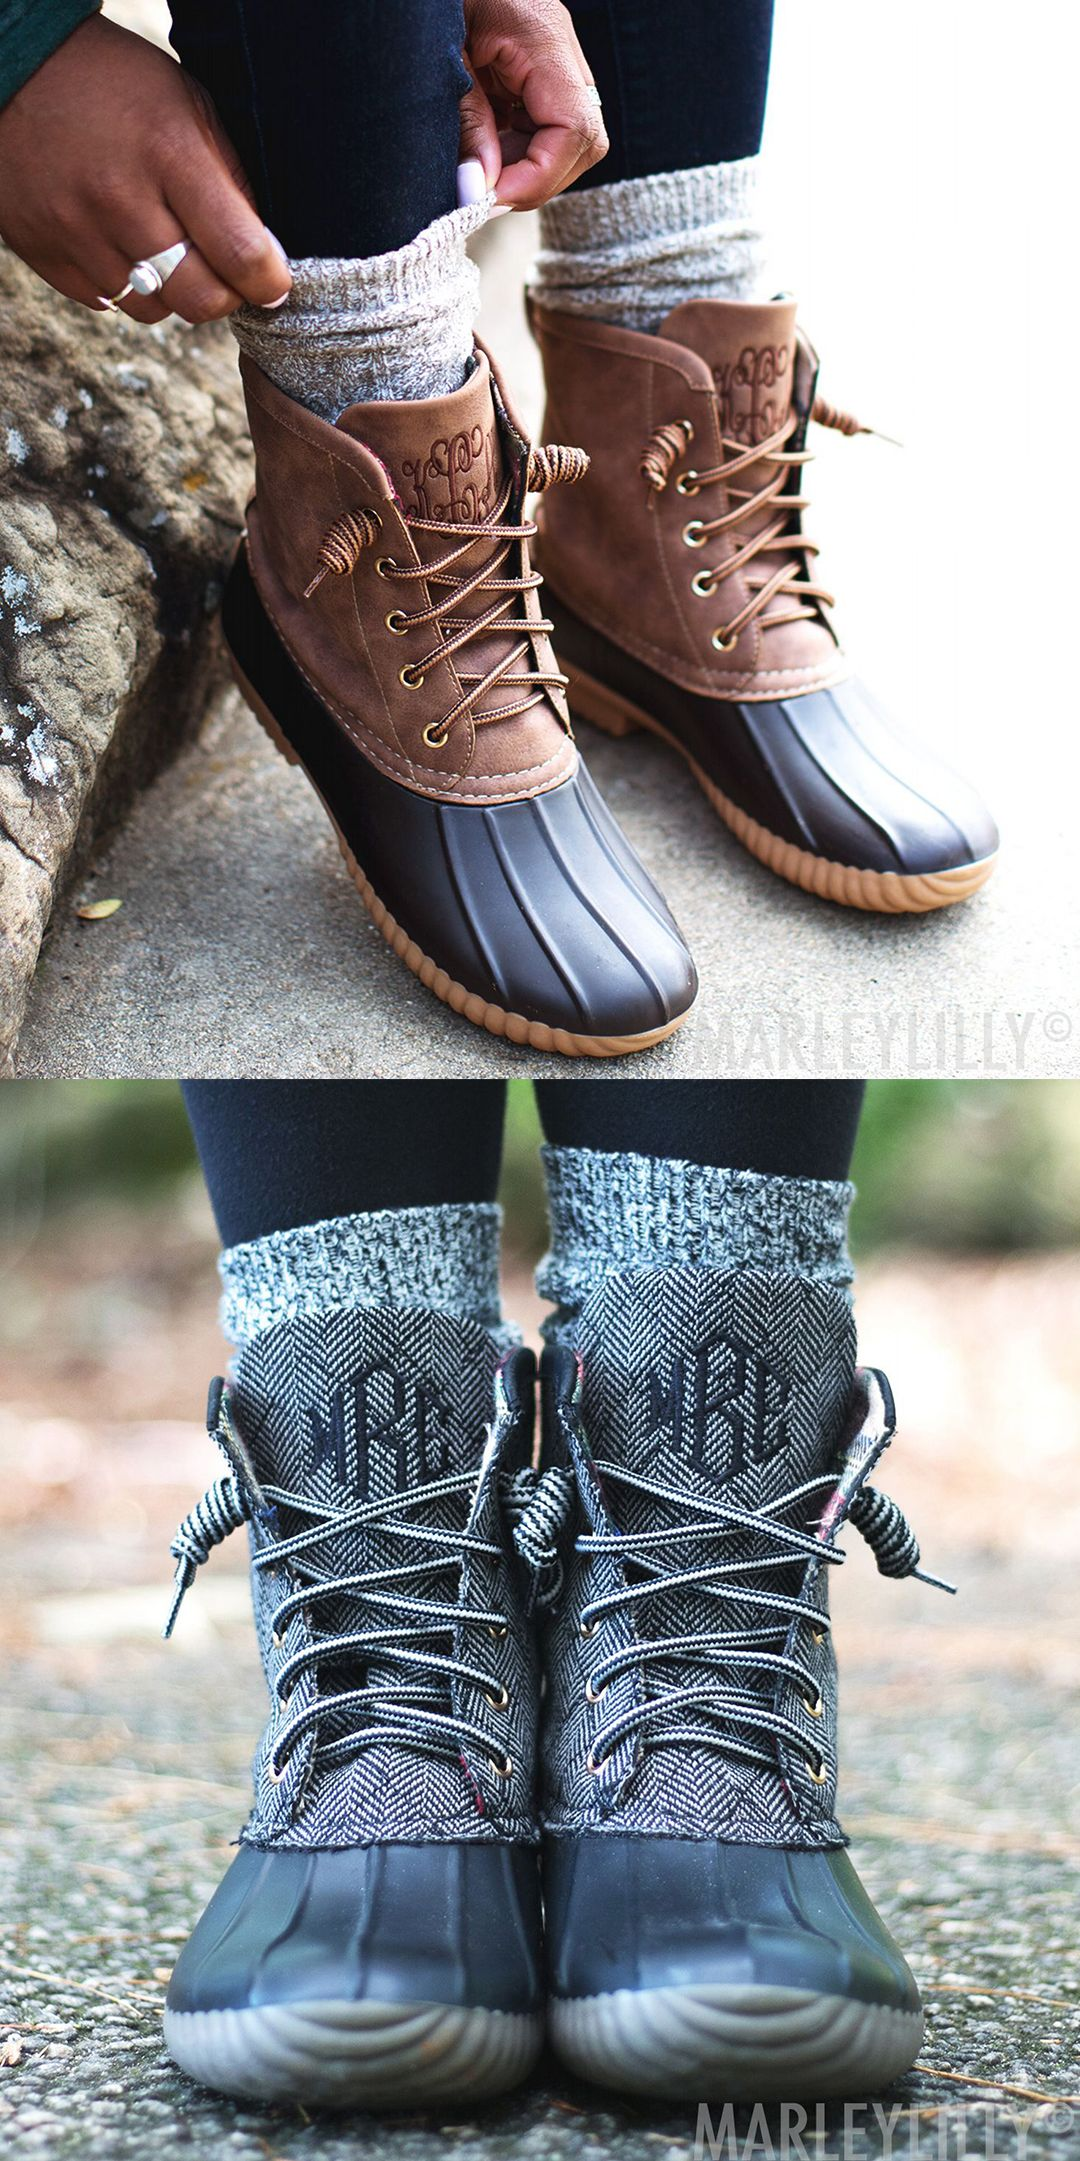 a29fb88c60450 Monogrammed Duck Boots are a fall essential that never goes out of ...